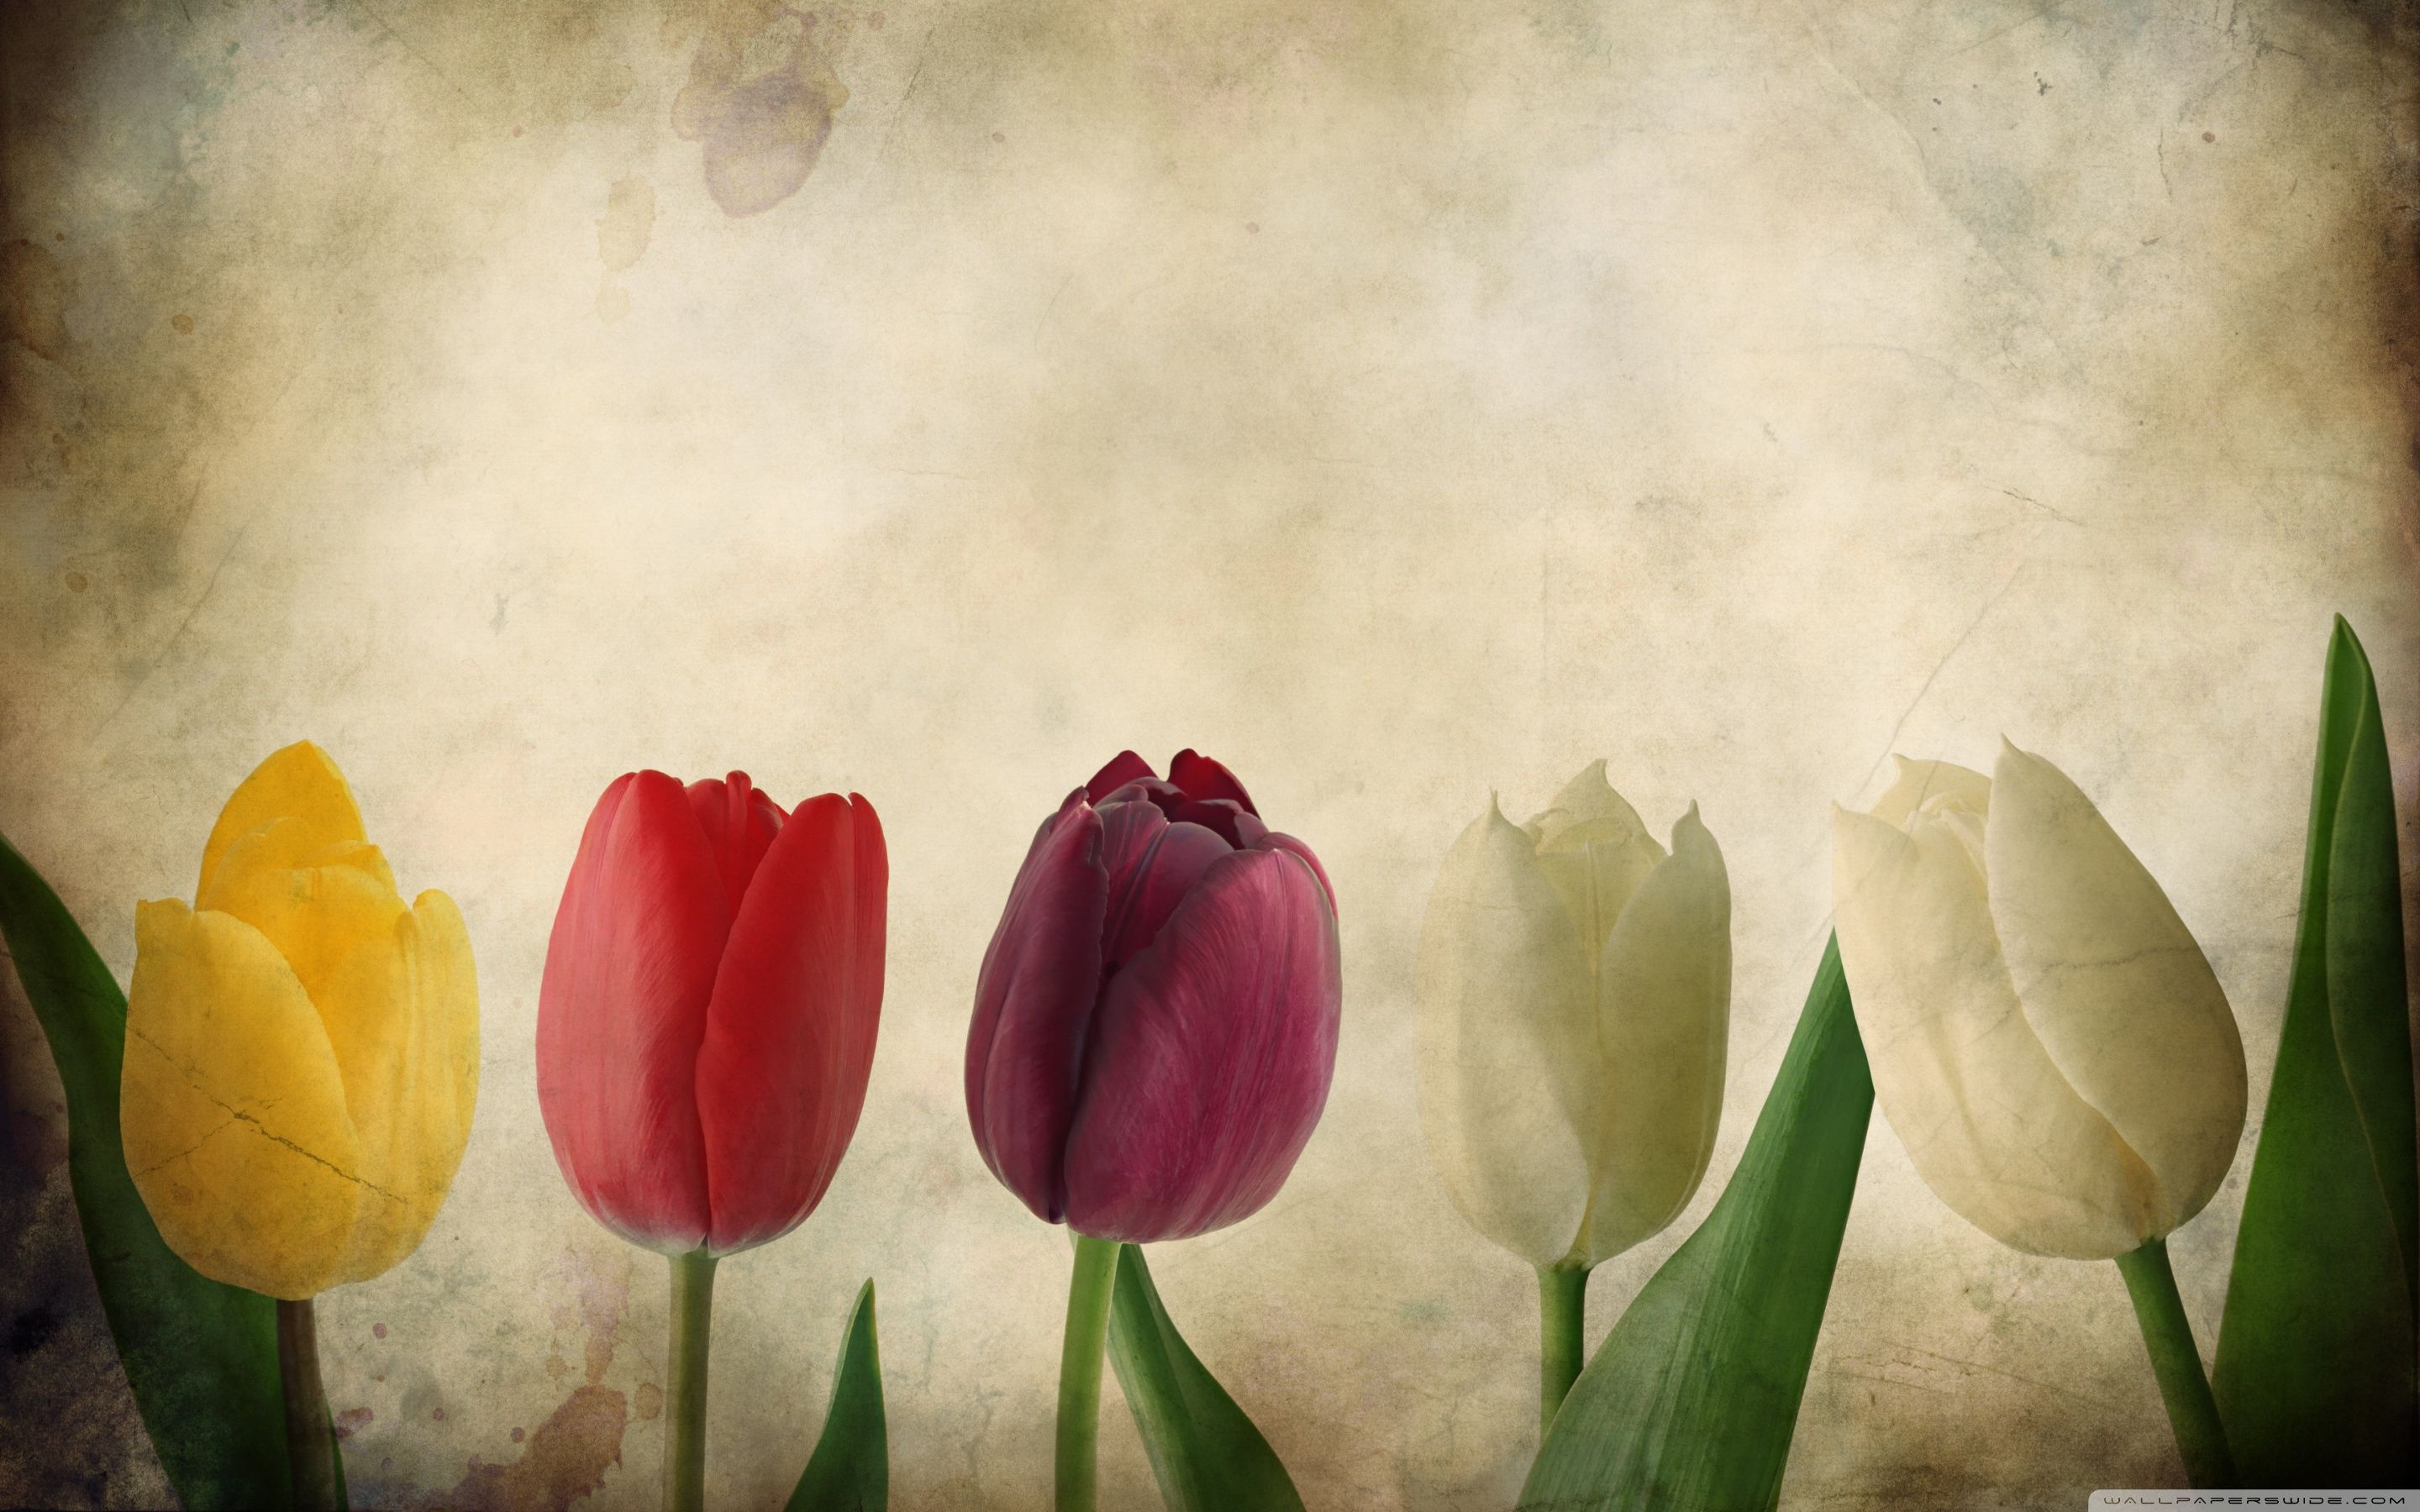 tulip flower tulip pinterest tulips flowers flower images wallpapers and flower images